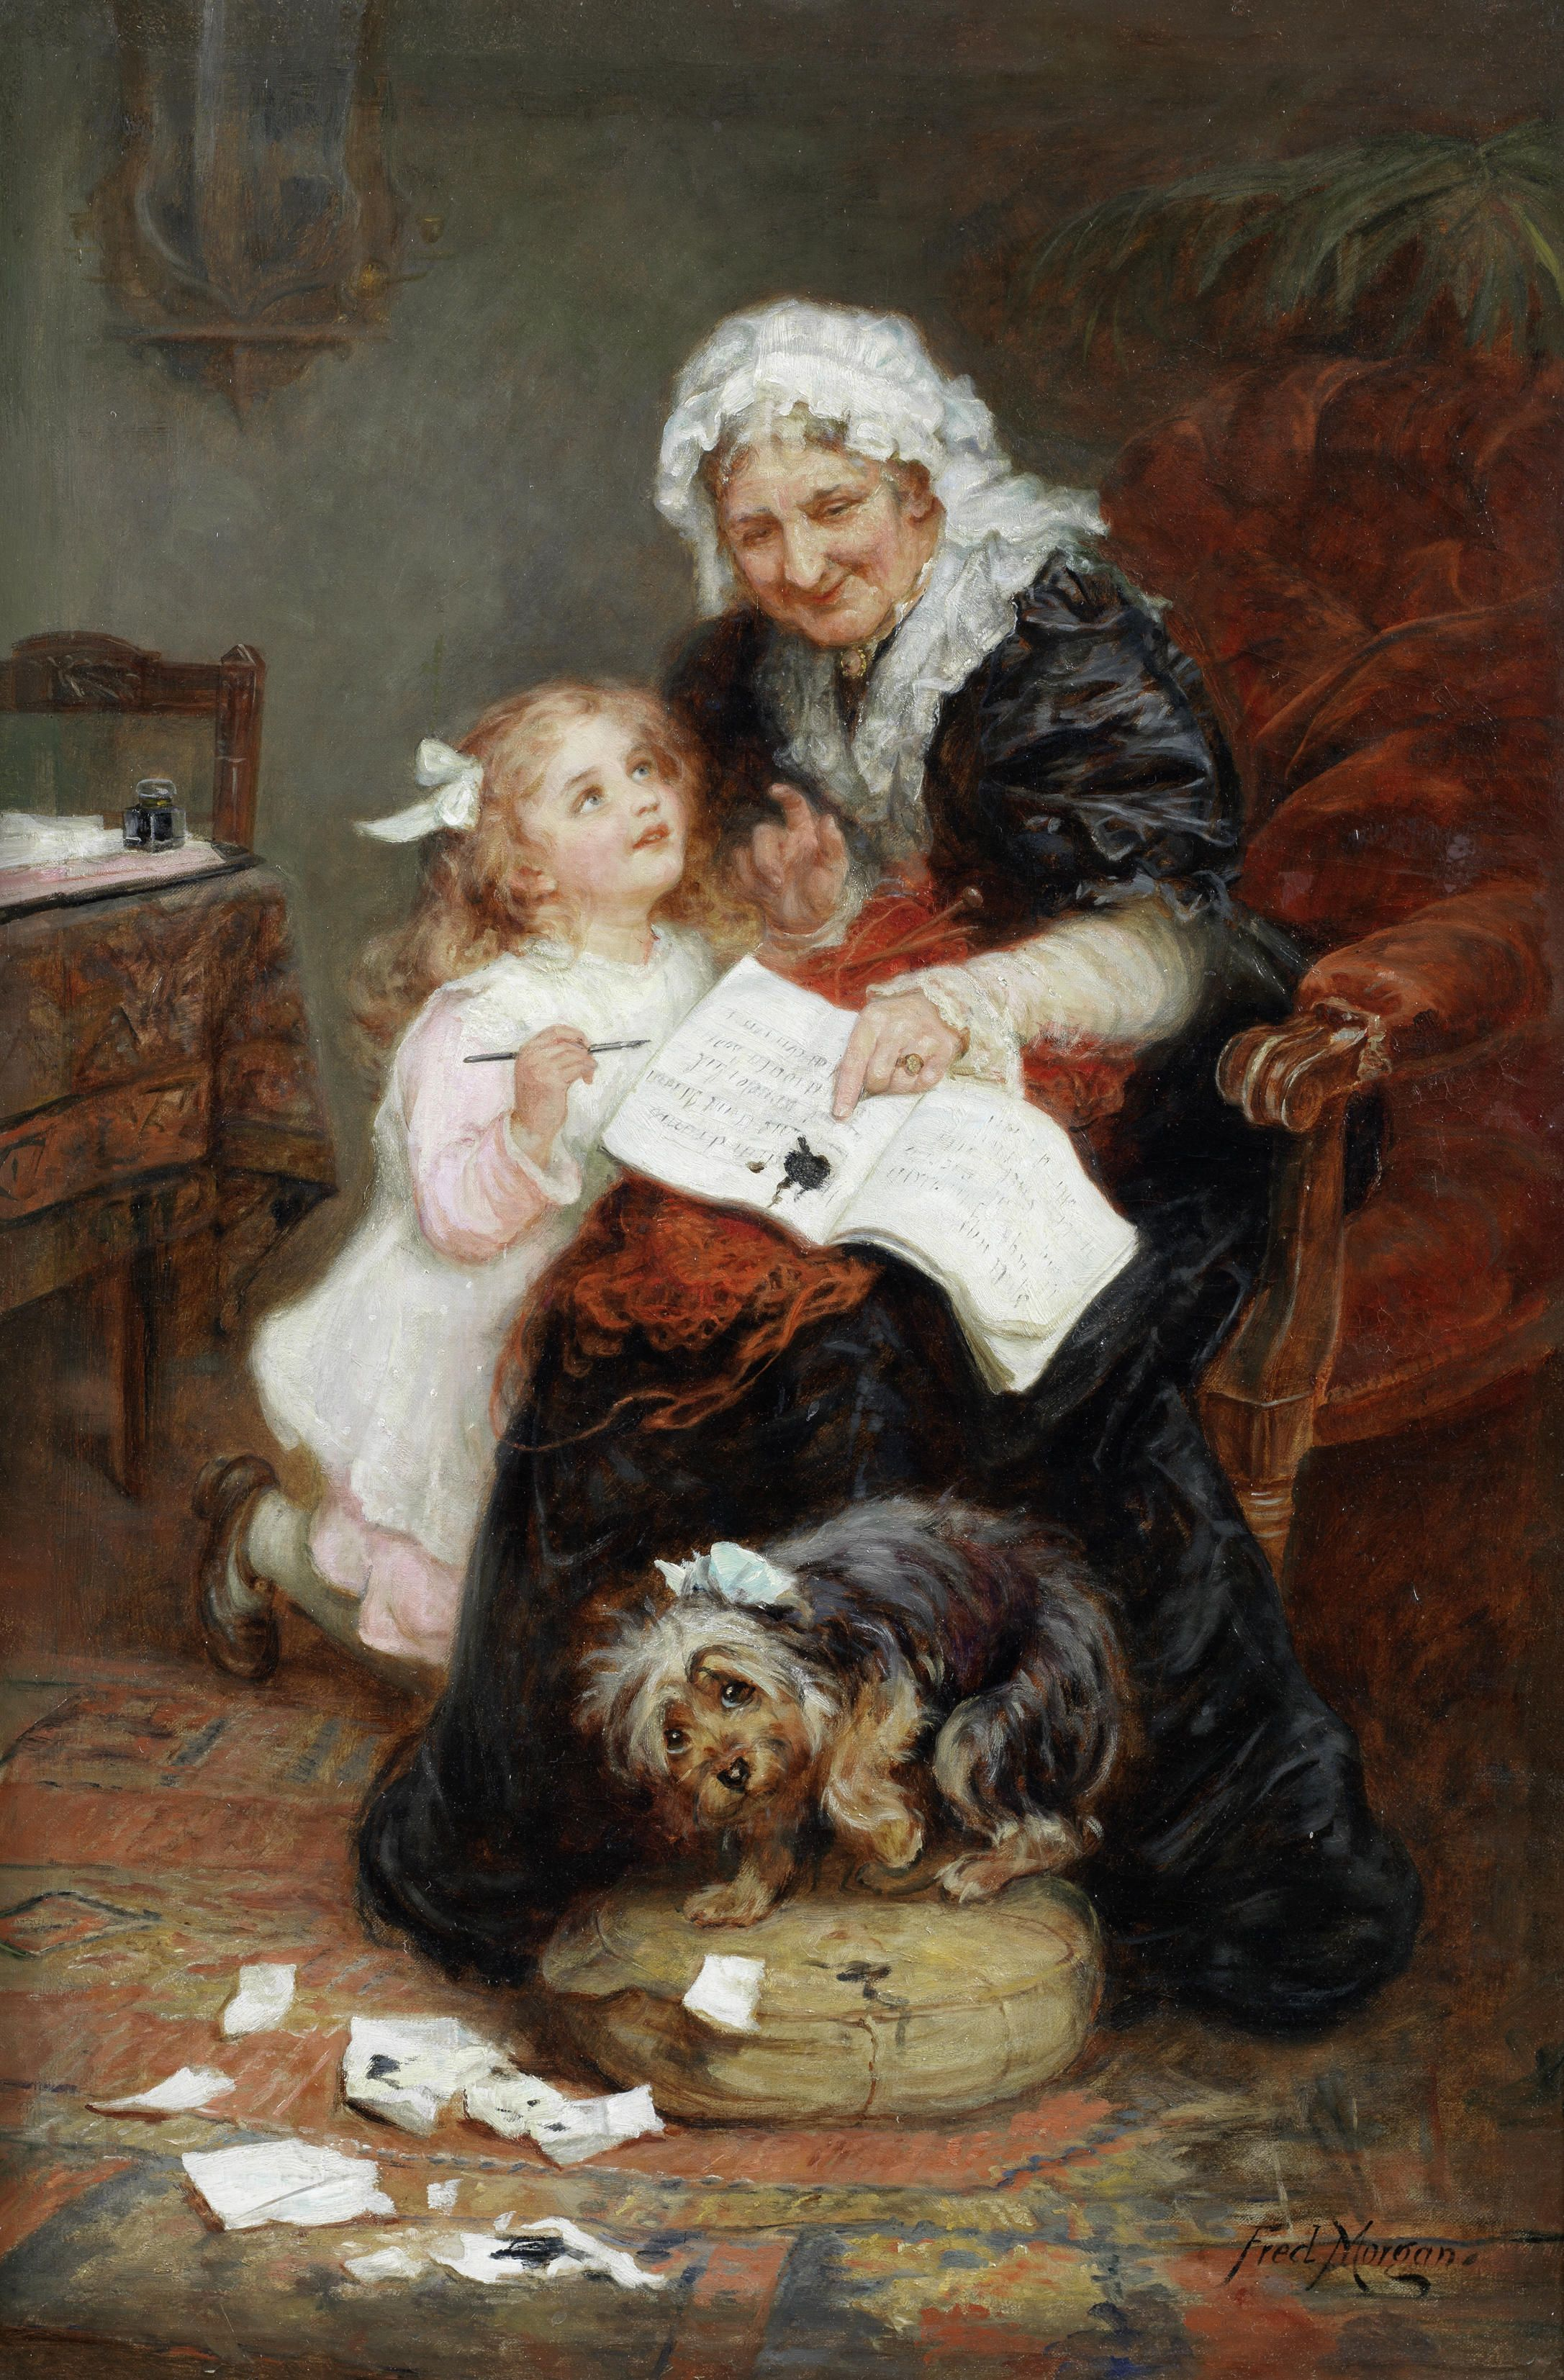 File service dress blues jpg wikimedia commons - File Frederick Morgan The Penitent Puppy Jpg Wikimedia Commons Commons Wikimedia